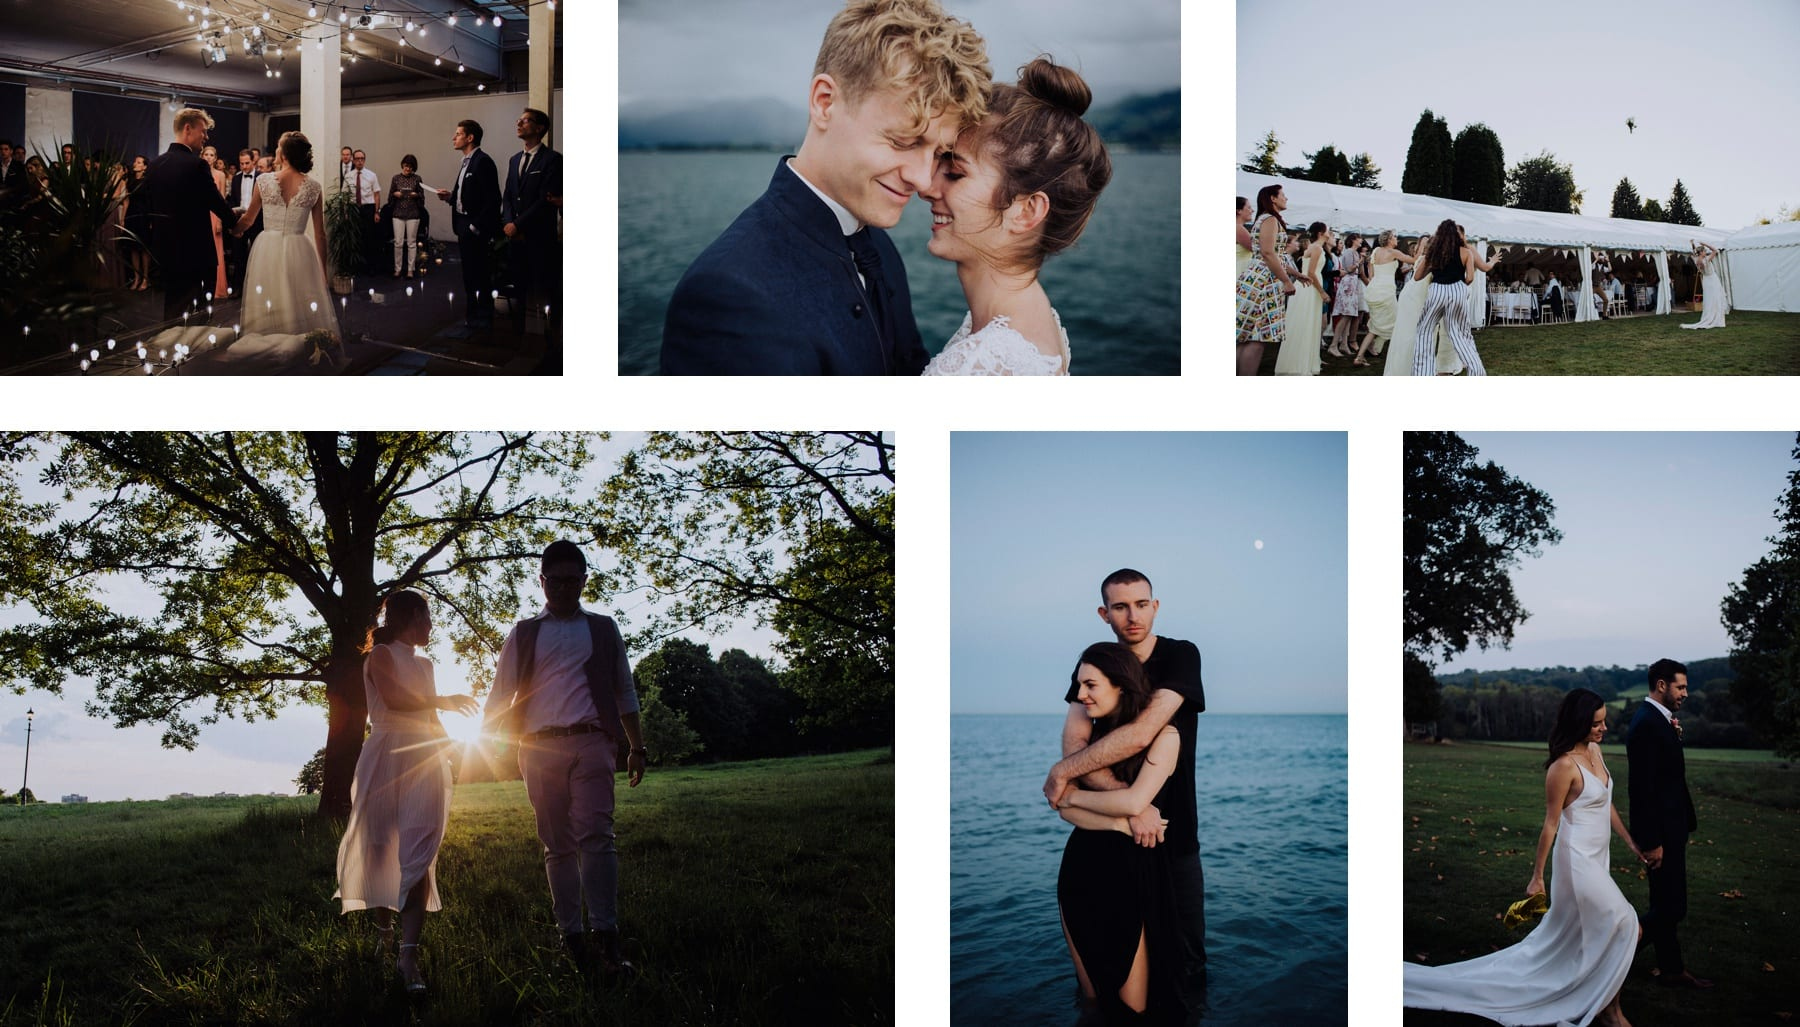 Photos of couples getting married